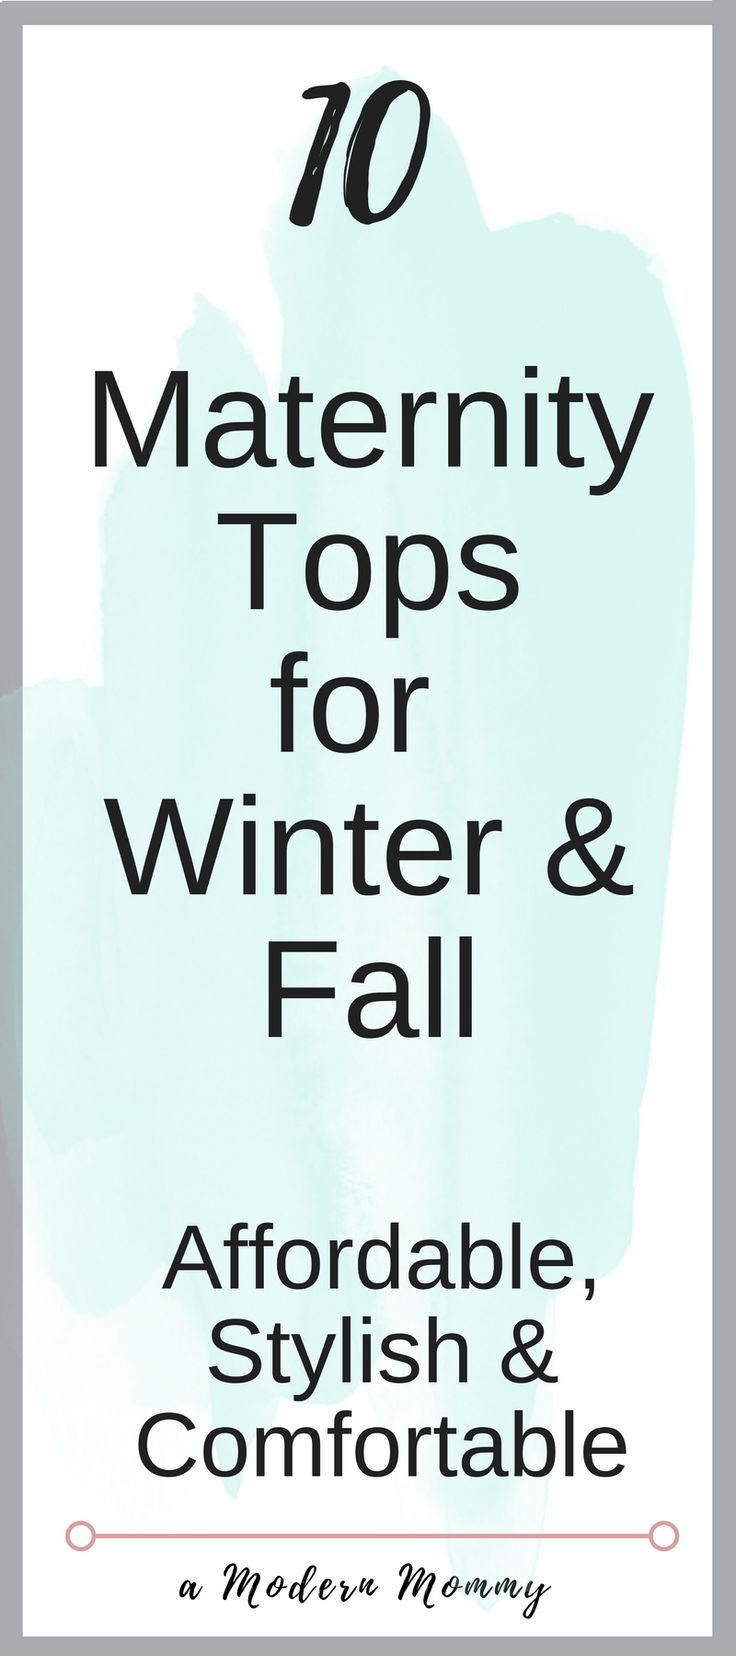 Maternity Clothing for Fall & Winter.  Affordable, Stylish, Comfortable Maternity Shirts and Maternity Sweaters during your pregnancy you must have for Winter and Fall!  Enjoy your pregnancy in style without overspending!